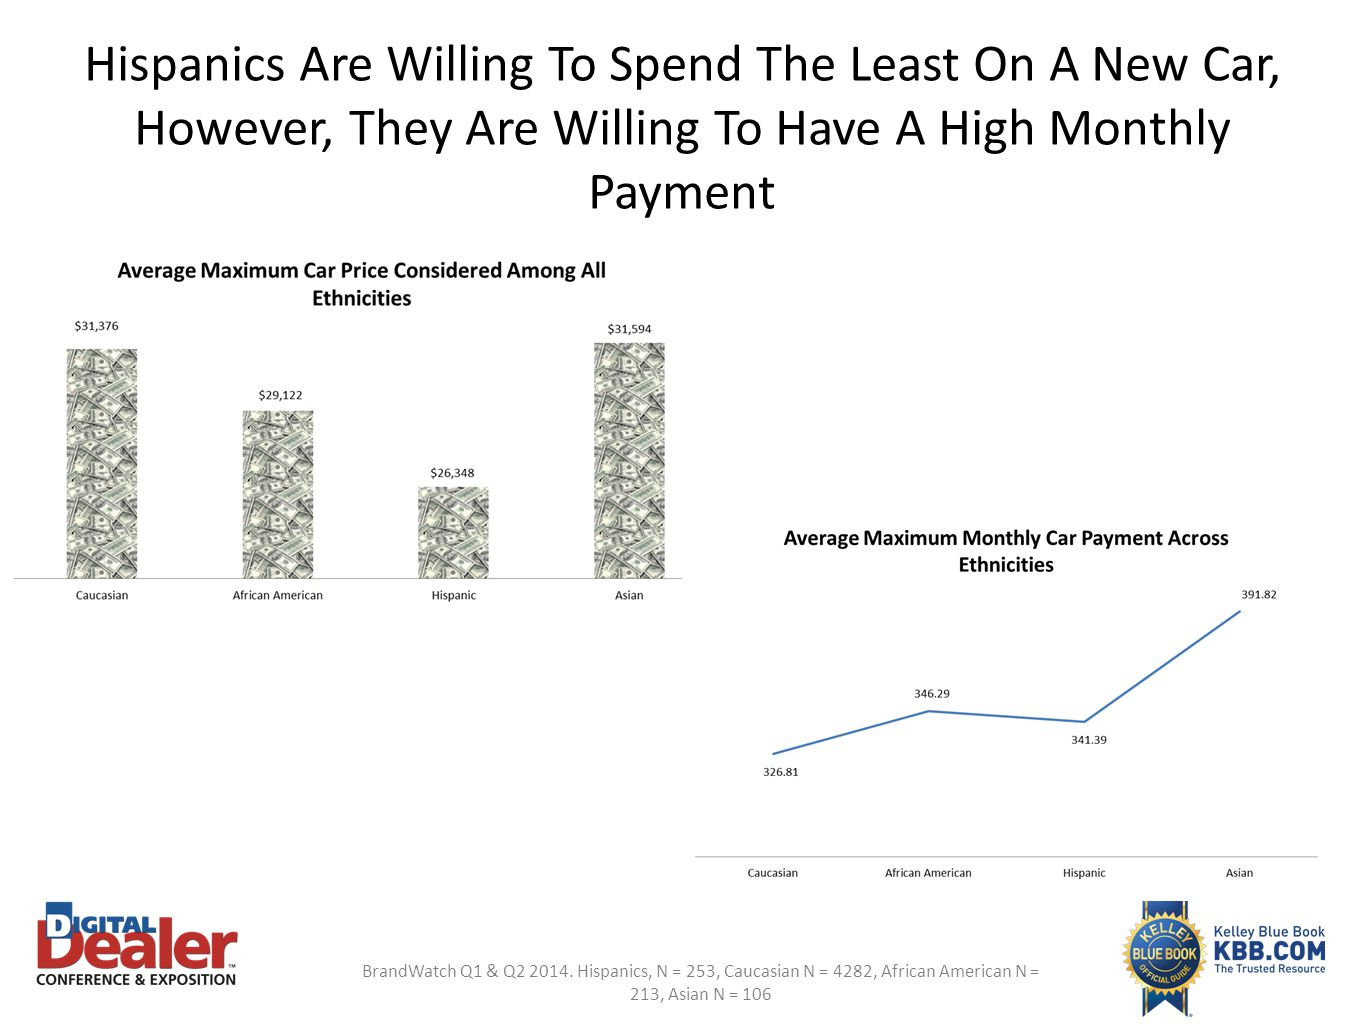 Hispanics Are Willing To Spend The Least On A New Car, However, They Are Willing To Have A High Monthly Payment